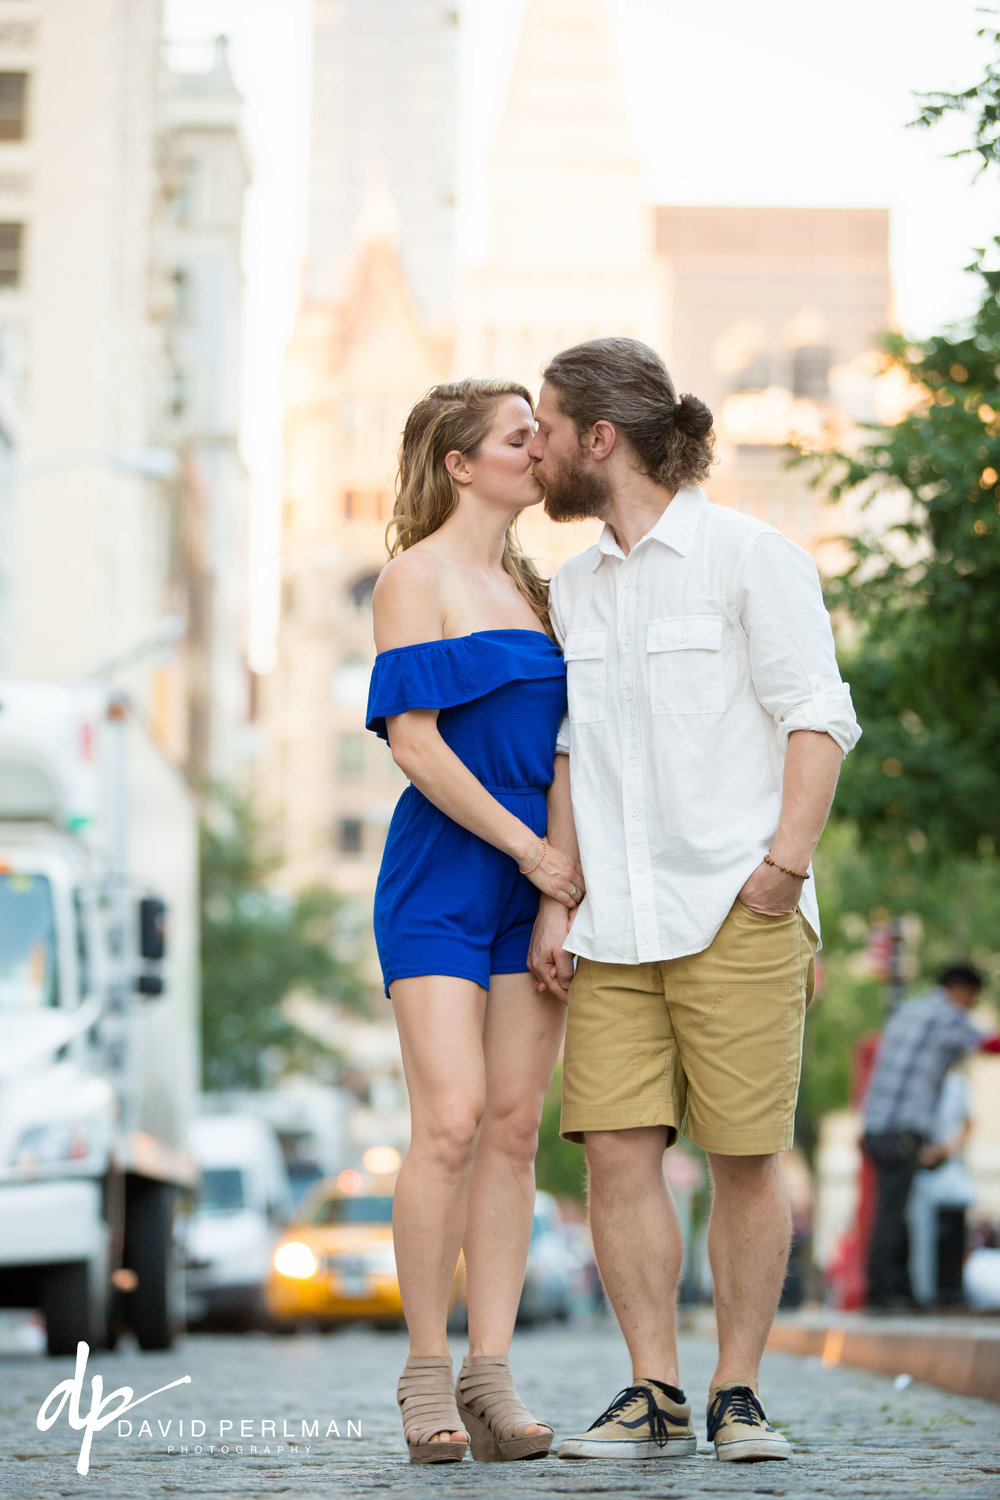 Union Square Engagement Photography Session